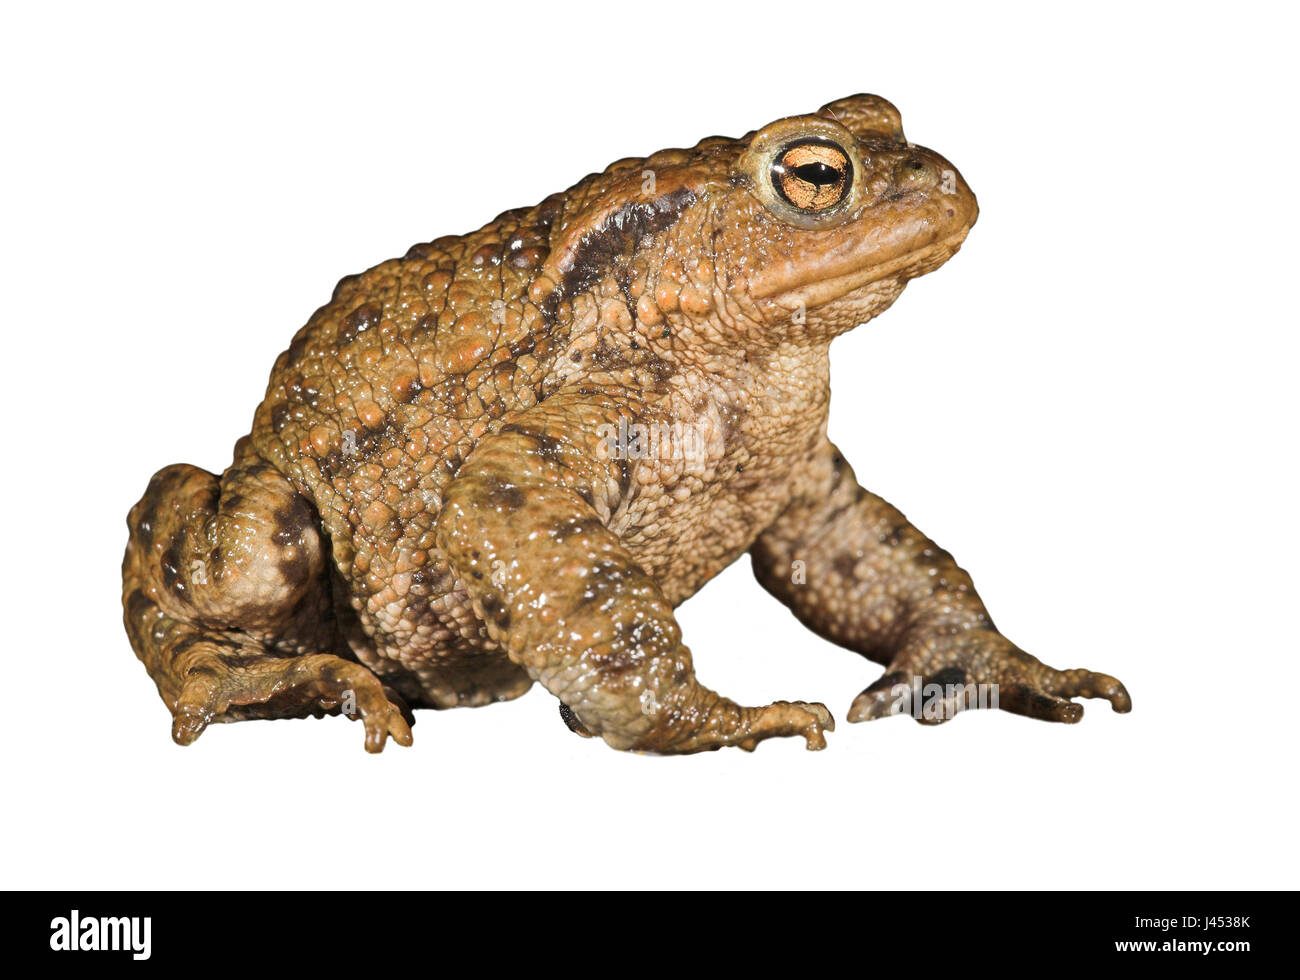 Crapaud commun against white background Photo Stock